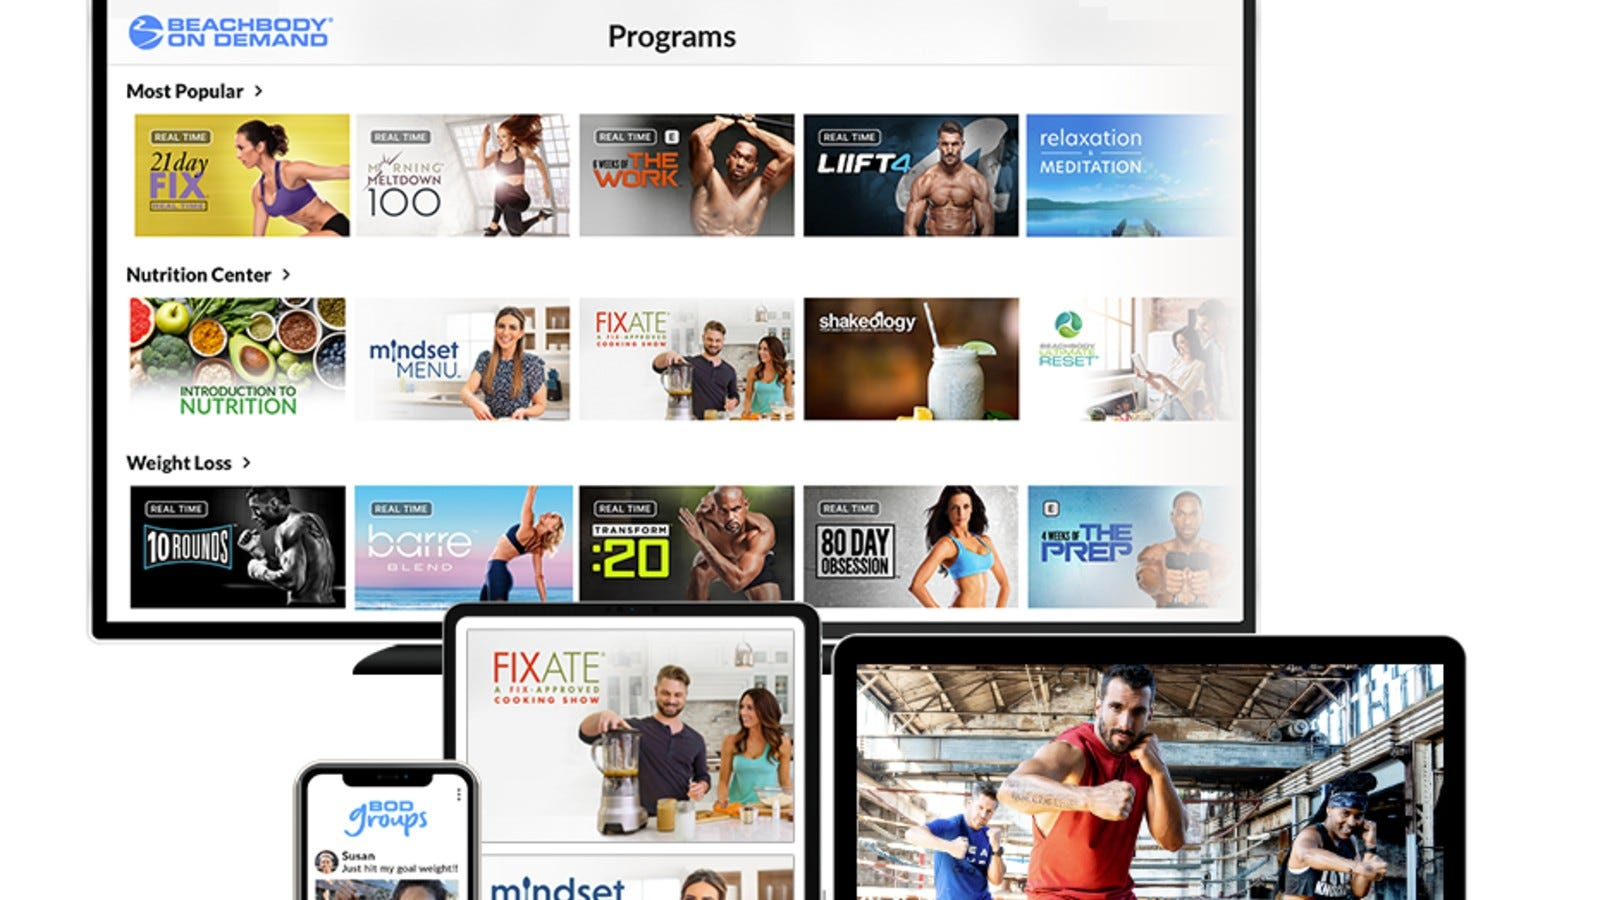 different programs offered by beachbody